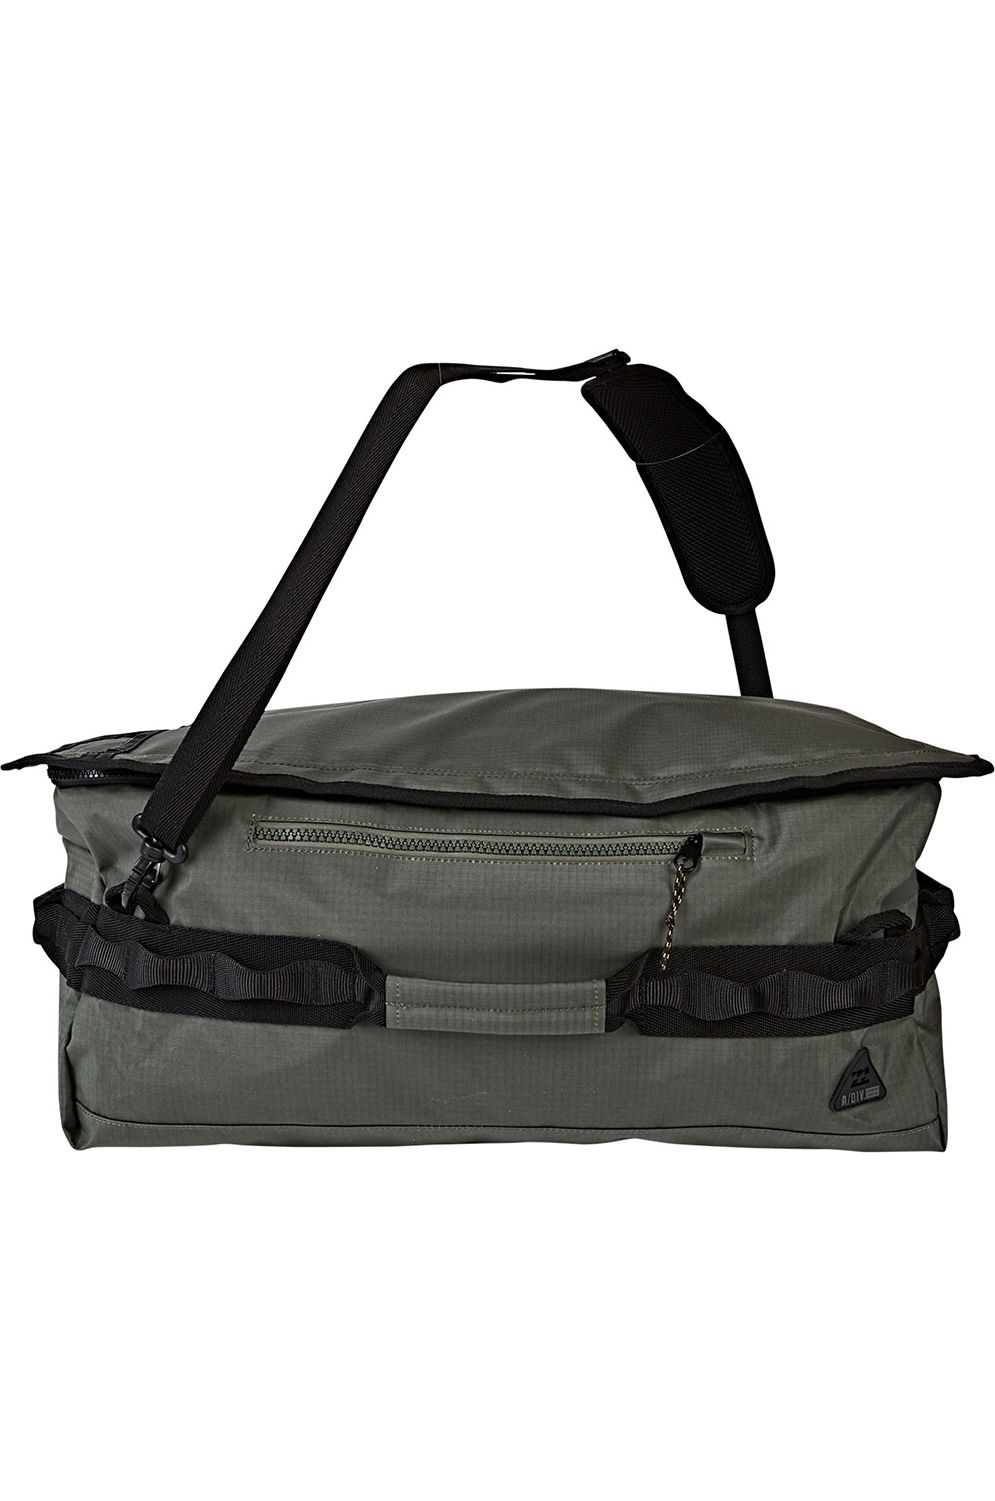 Billabong Bag SURFTREK DUFFEL ADVENTURE DIVISION Pine